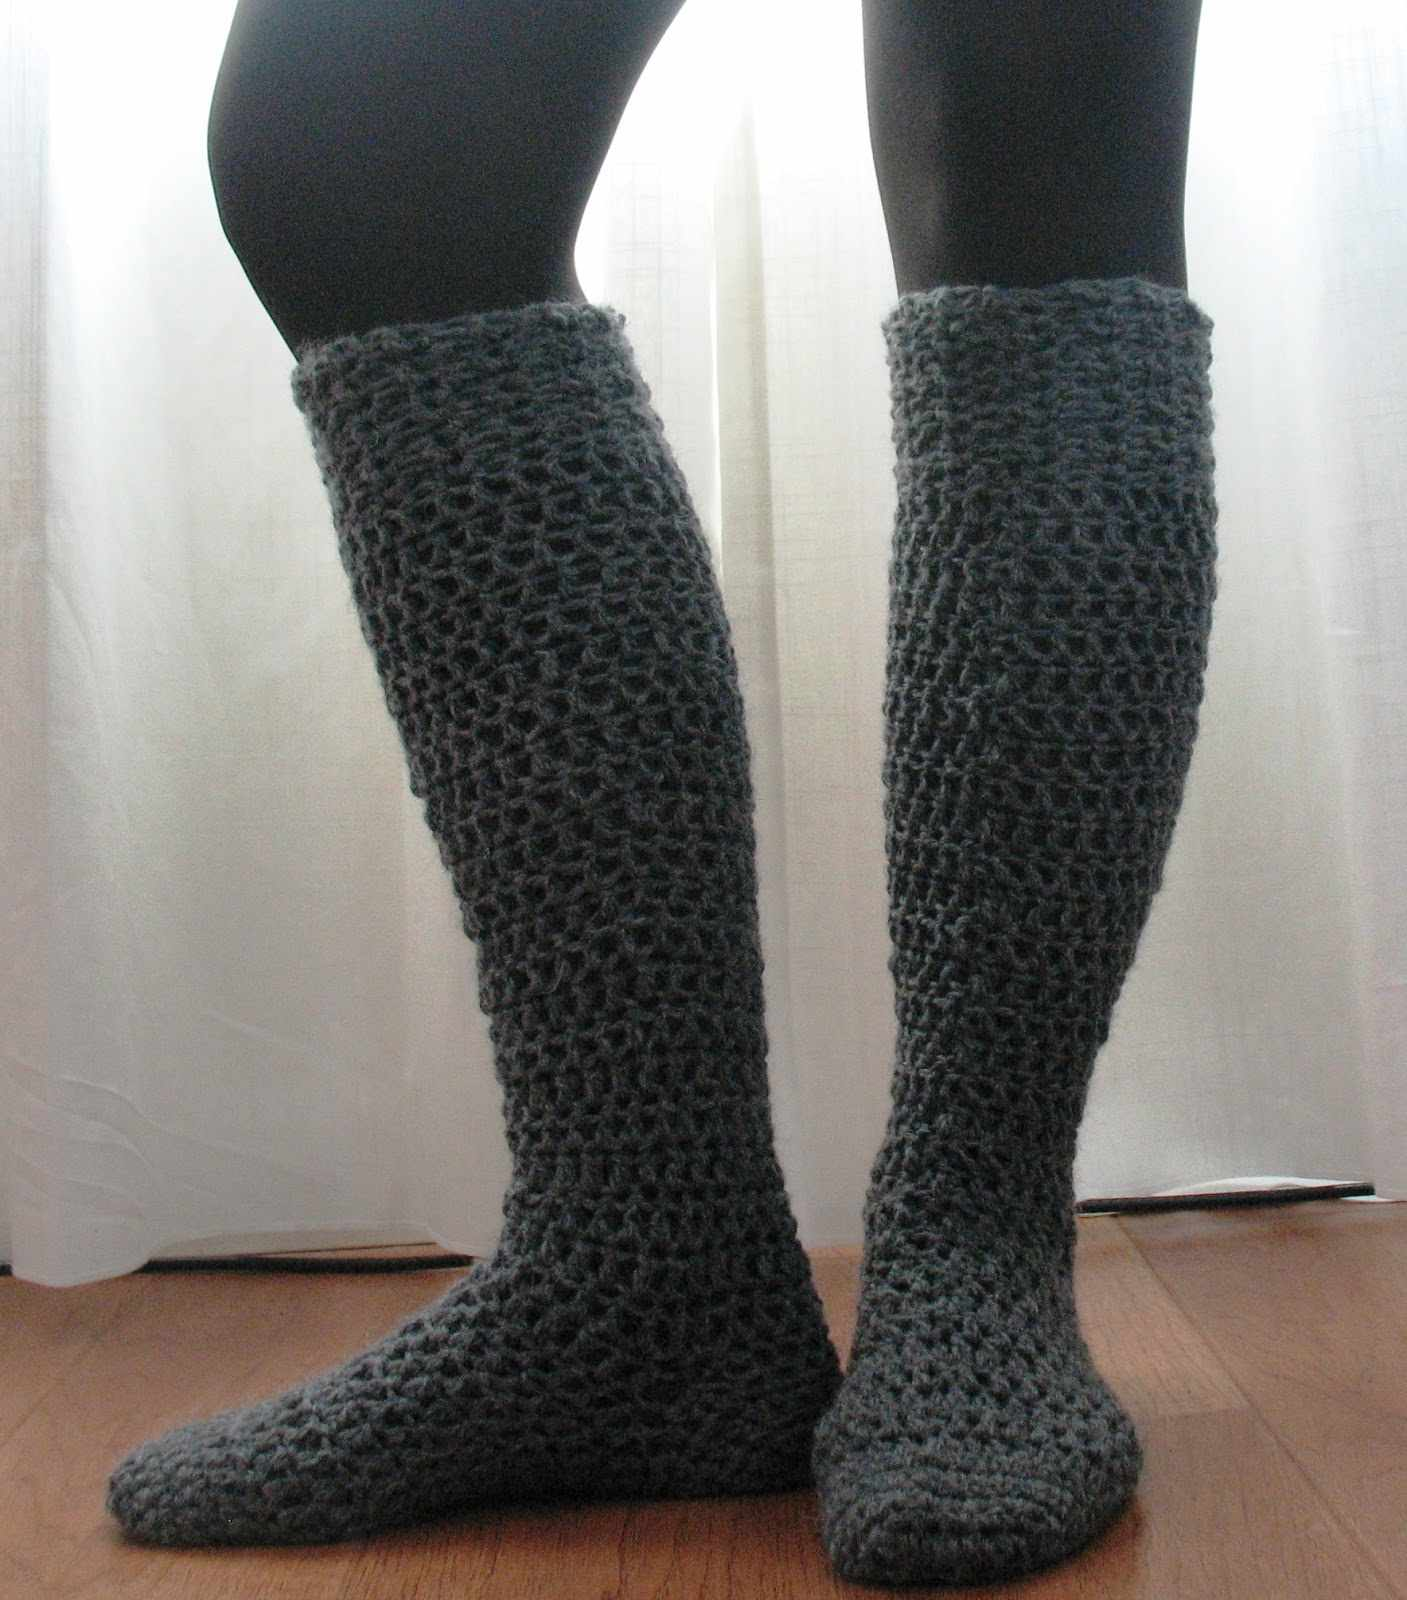 10+ Crochet Sock Patterns